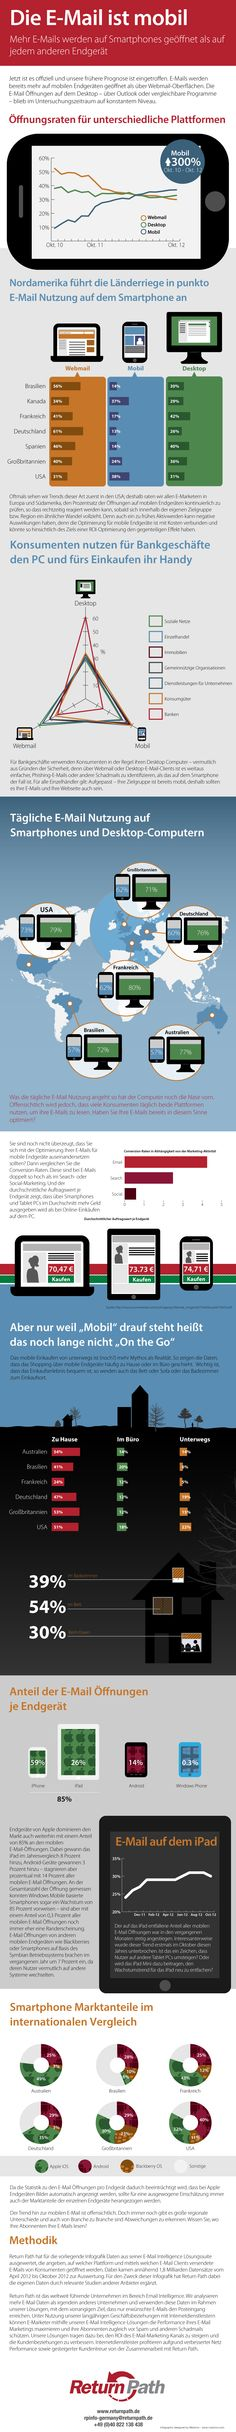 http://www.returnpath.de/files/resource/auto-draft/Return-Path-Infografik-Email-ist-mobil.png